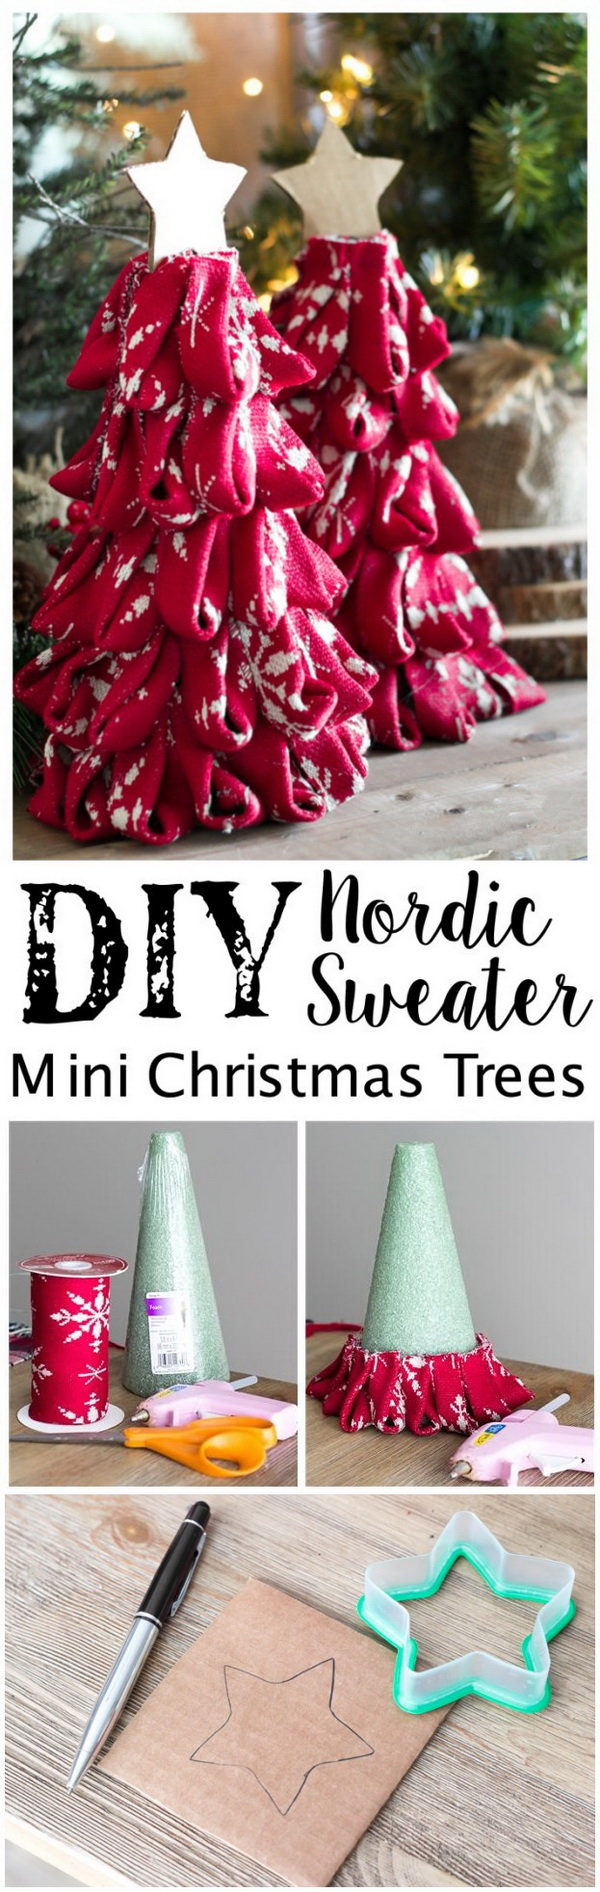 DIY Mini Christmas Trees Made with Nordic Sweater.